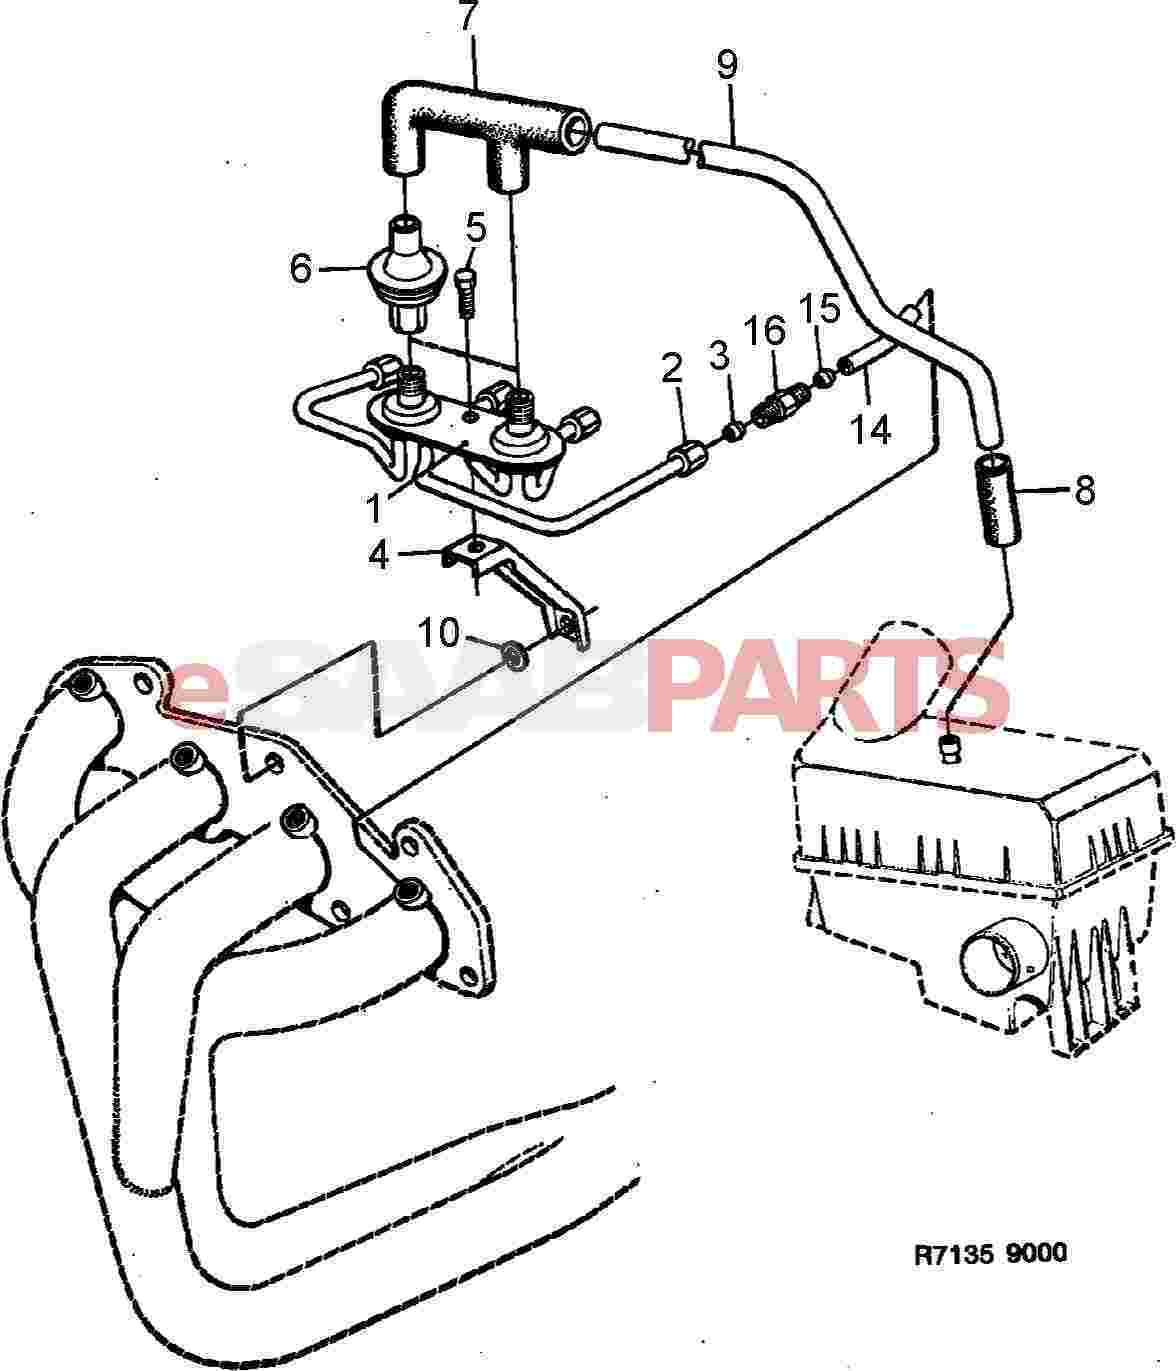 ej255 engine diagram  diagram  auto wiring diagram